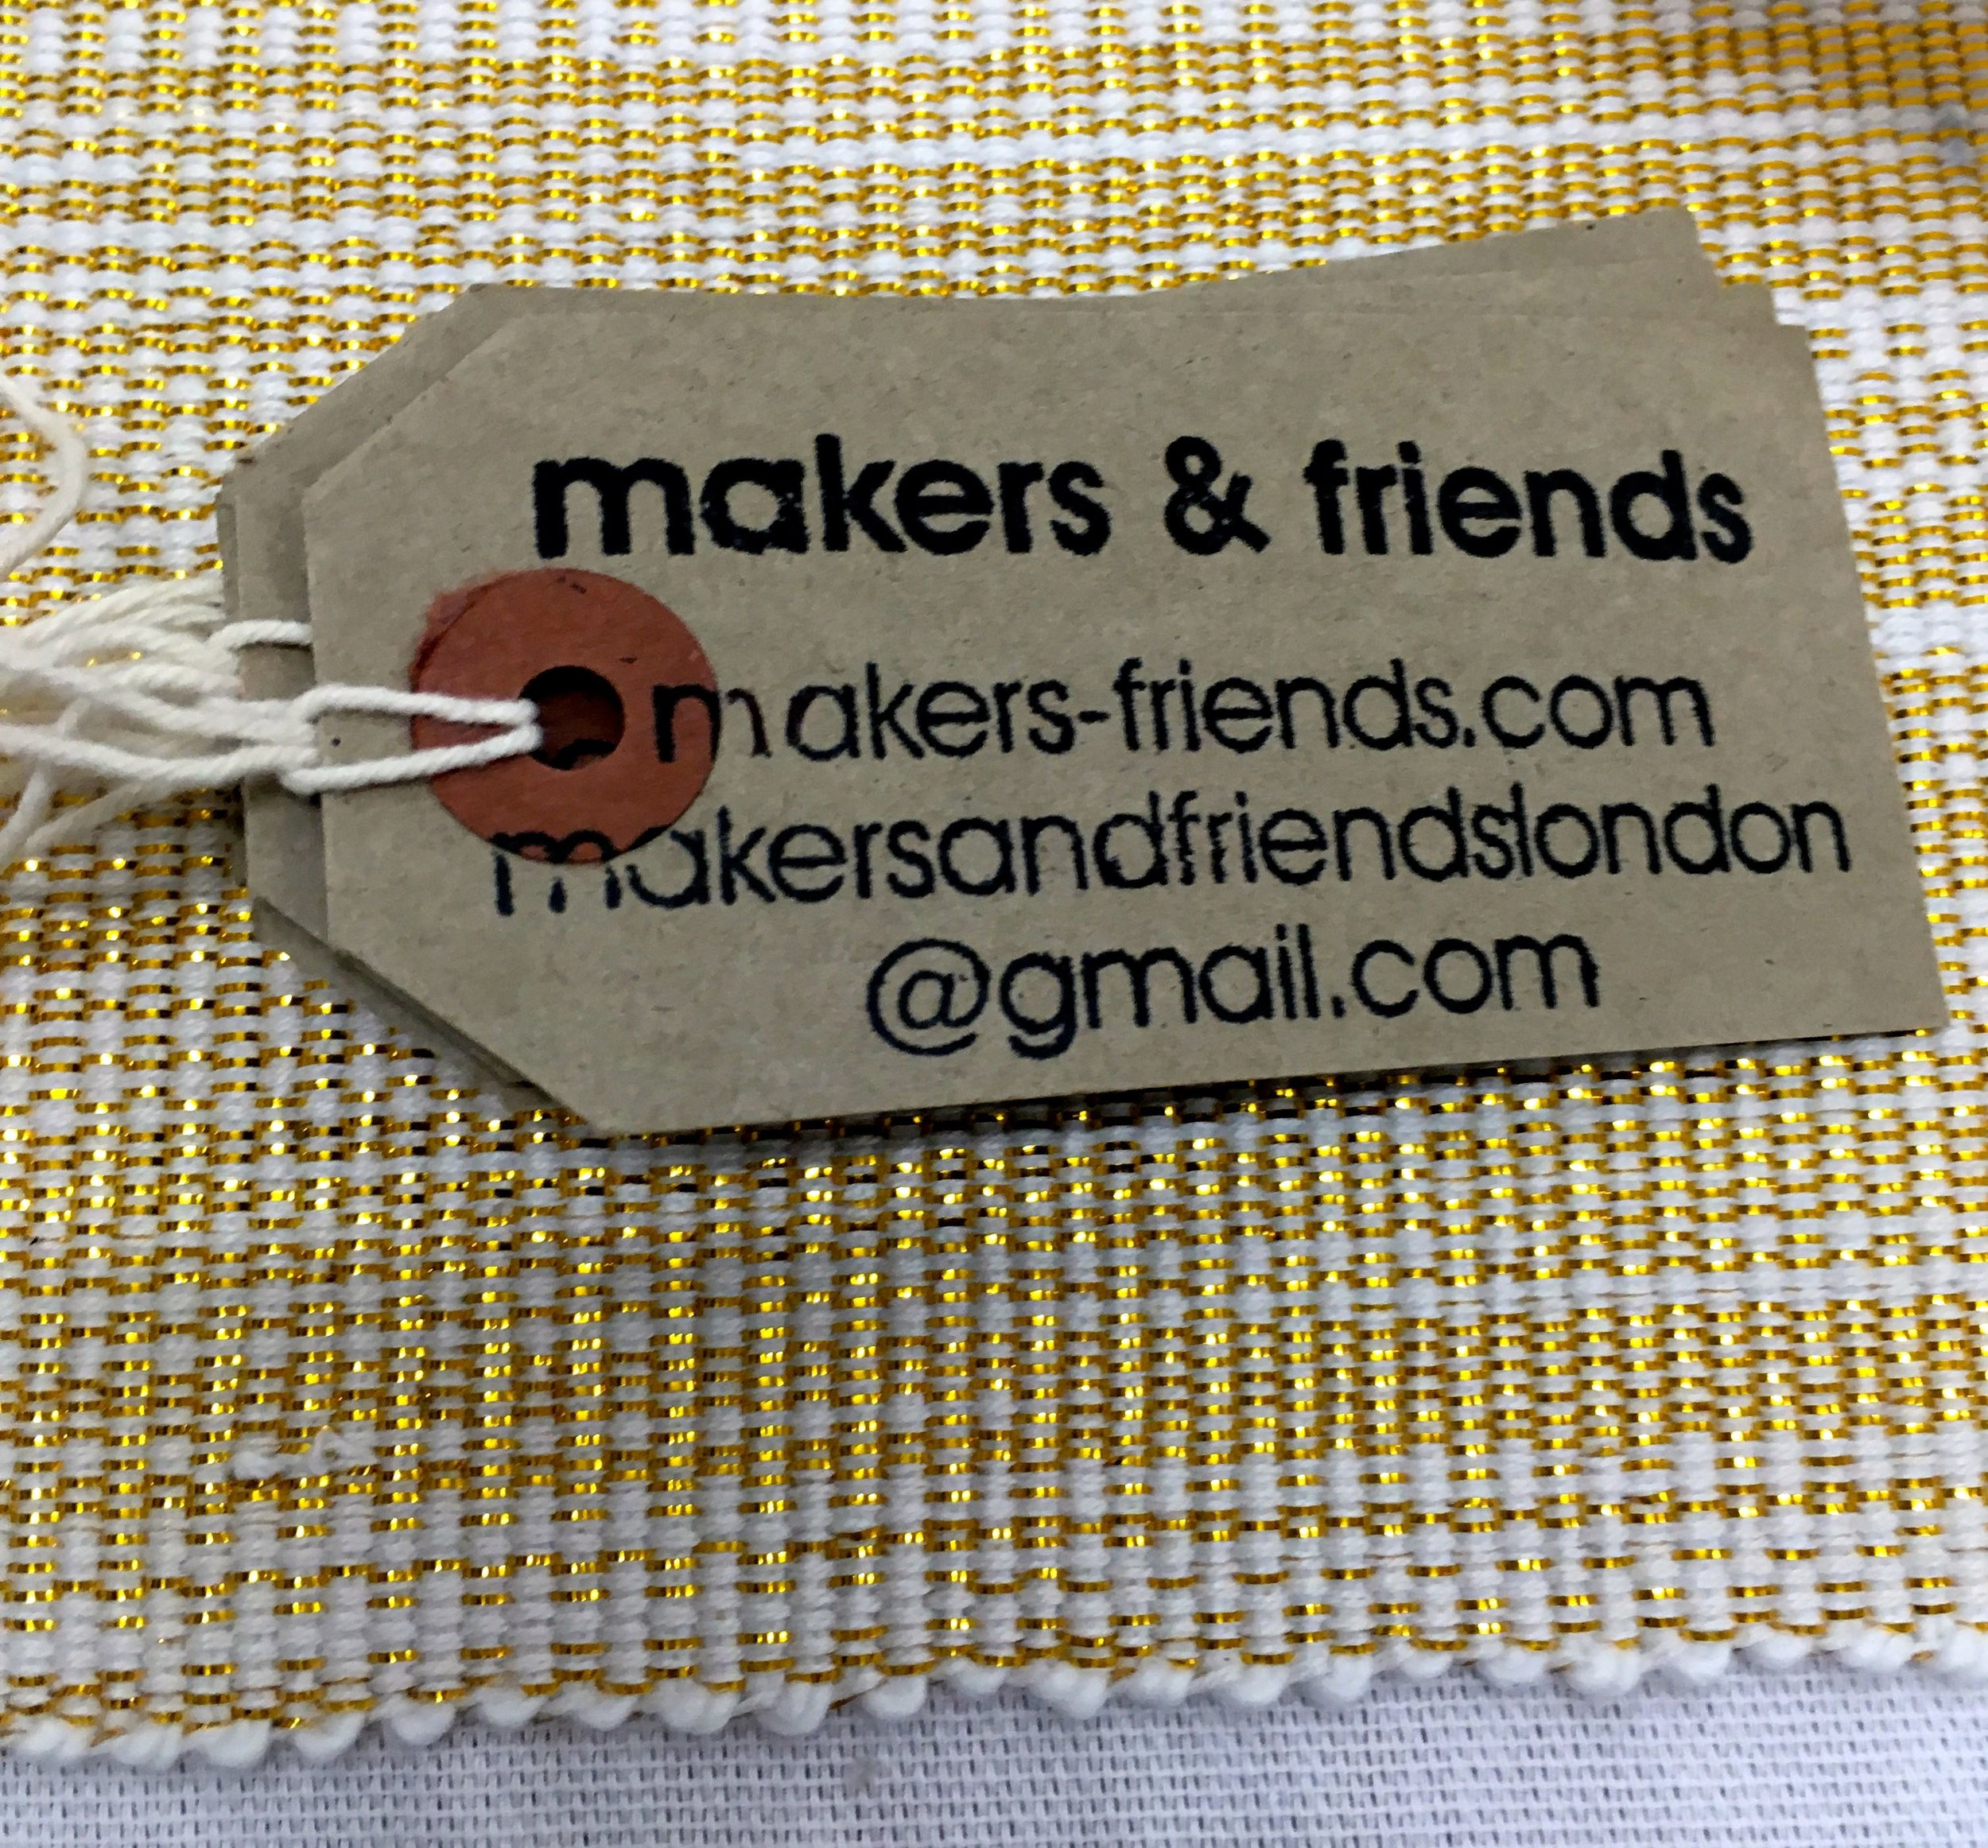 The workshop was hosted by makers and friends who support independent makers